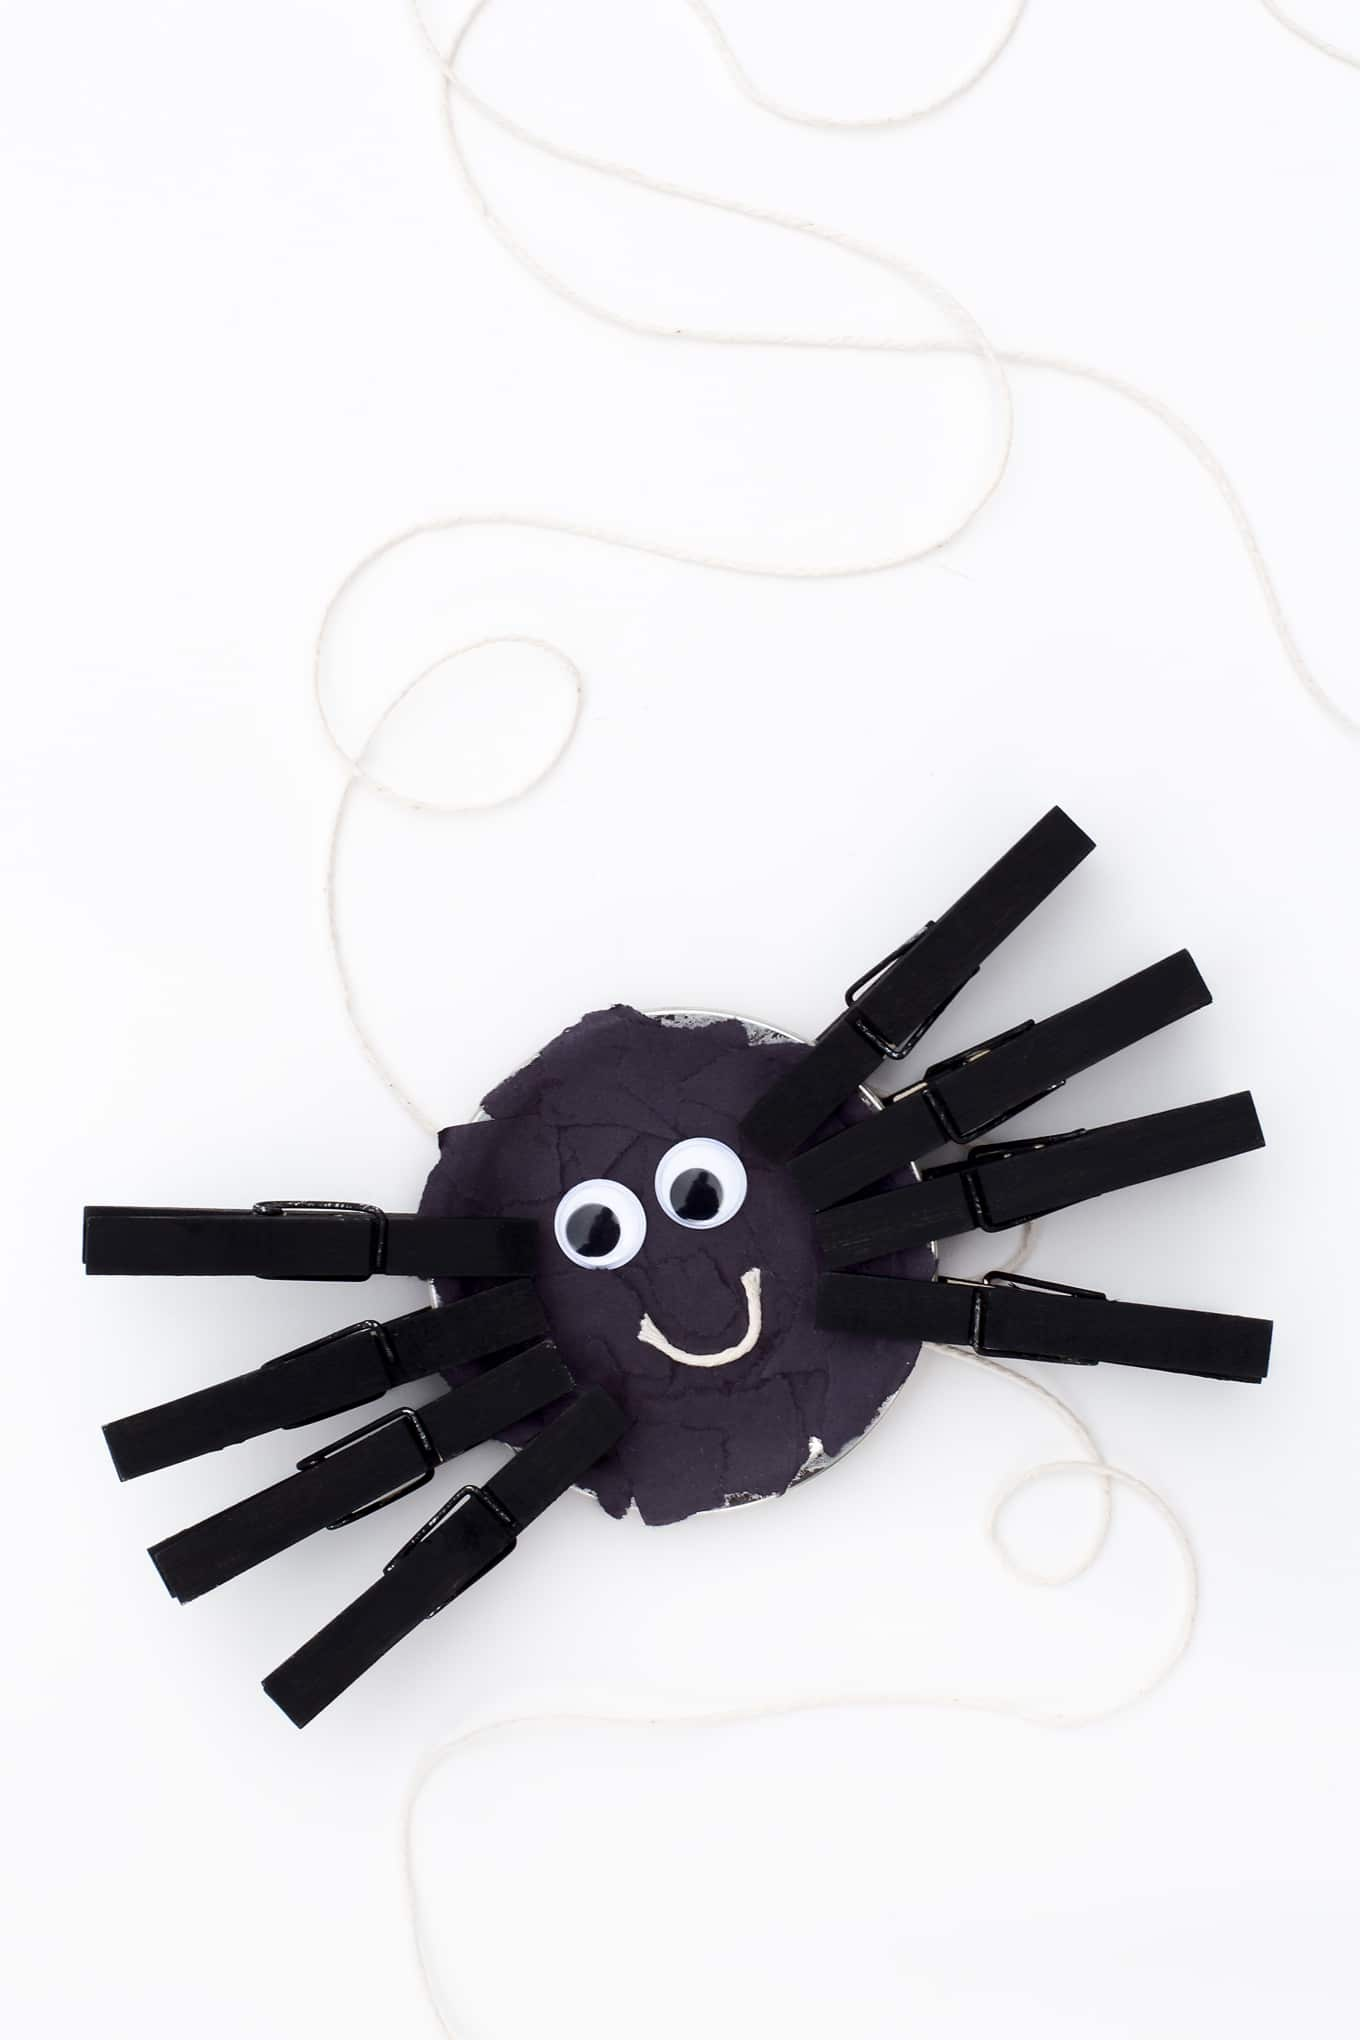 How to Make an Easy and Fun Spider Craft for Kids